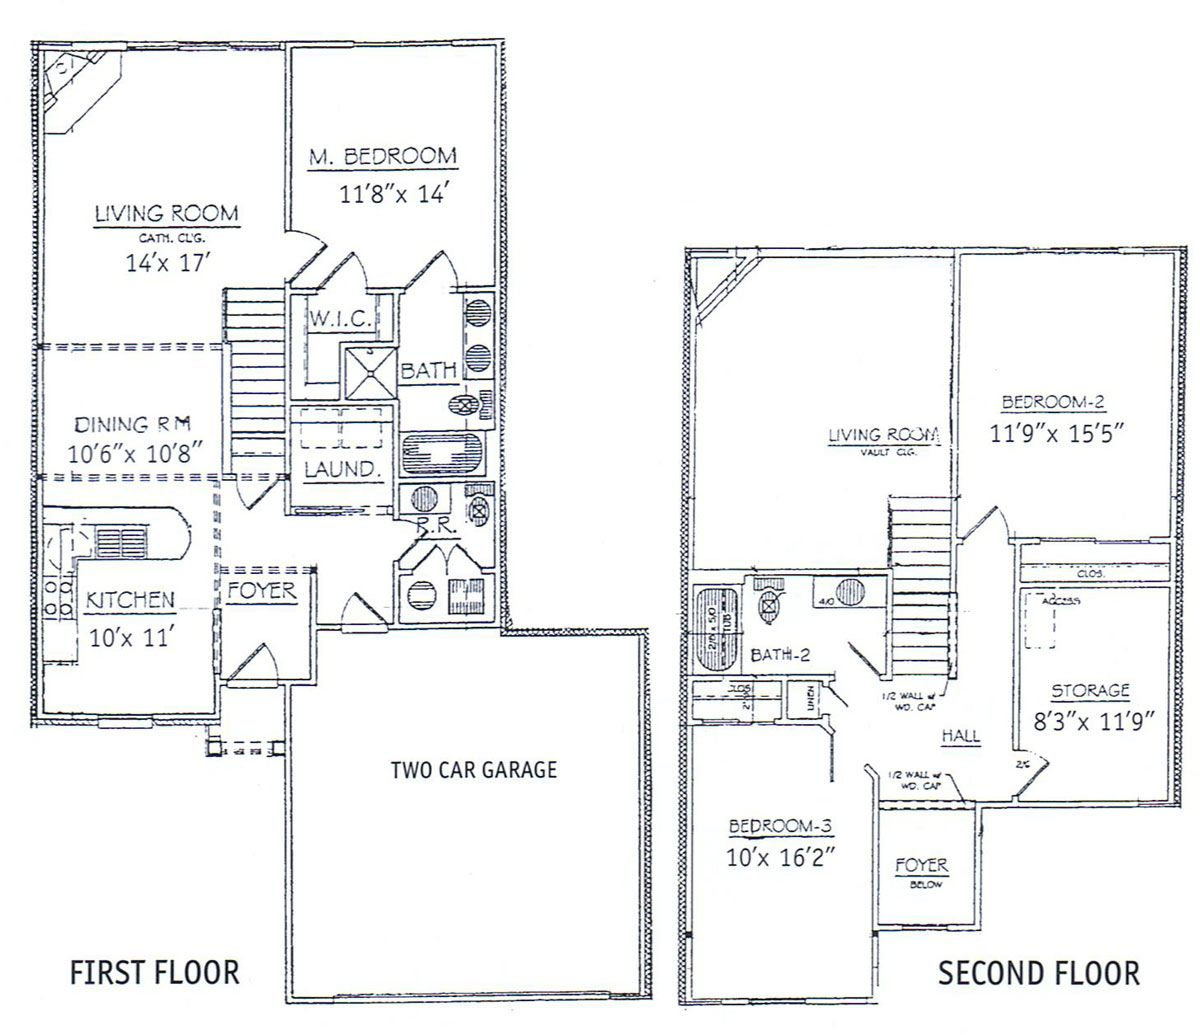 3 Bedrooms Floor Plans 2 Story Bdrm Basement The Two: 2 storey house plans